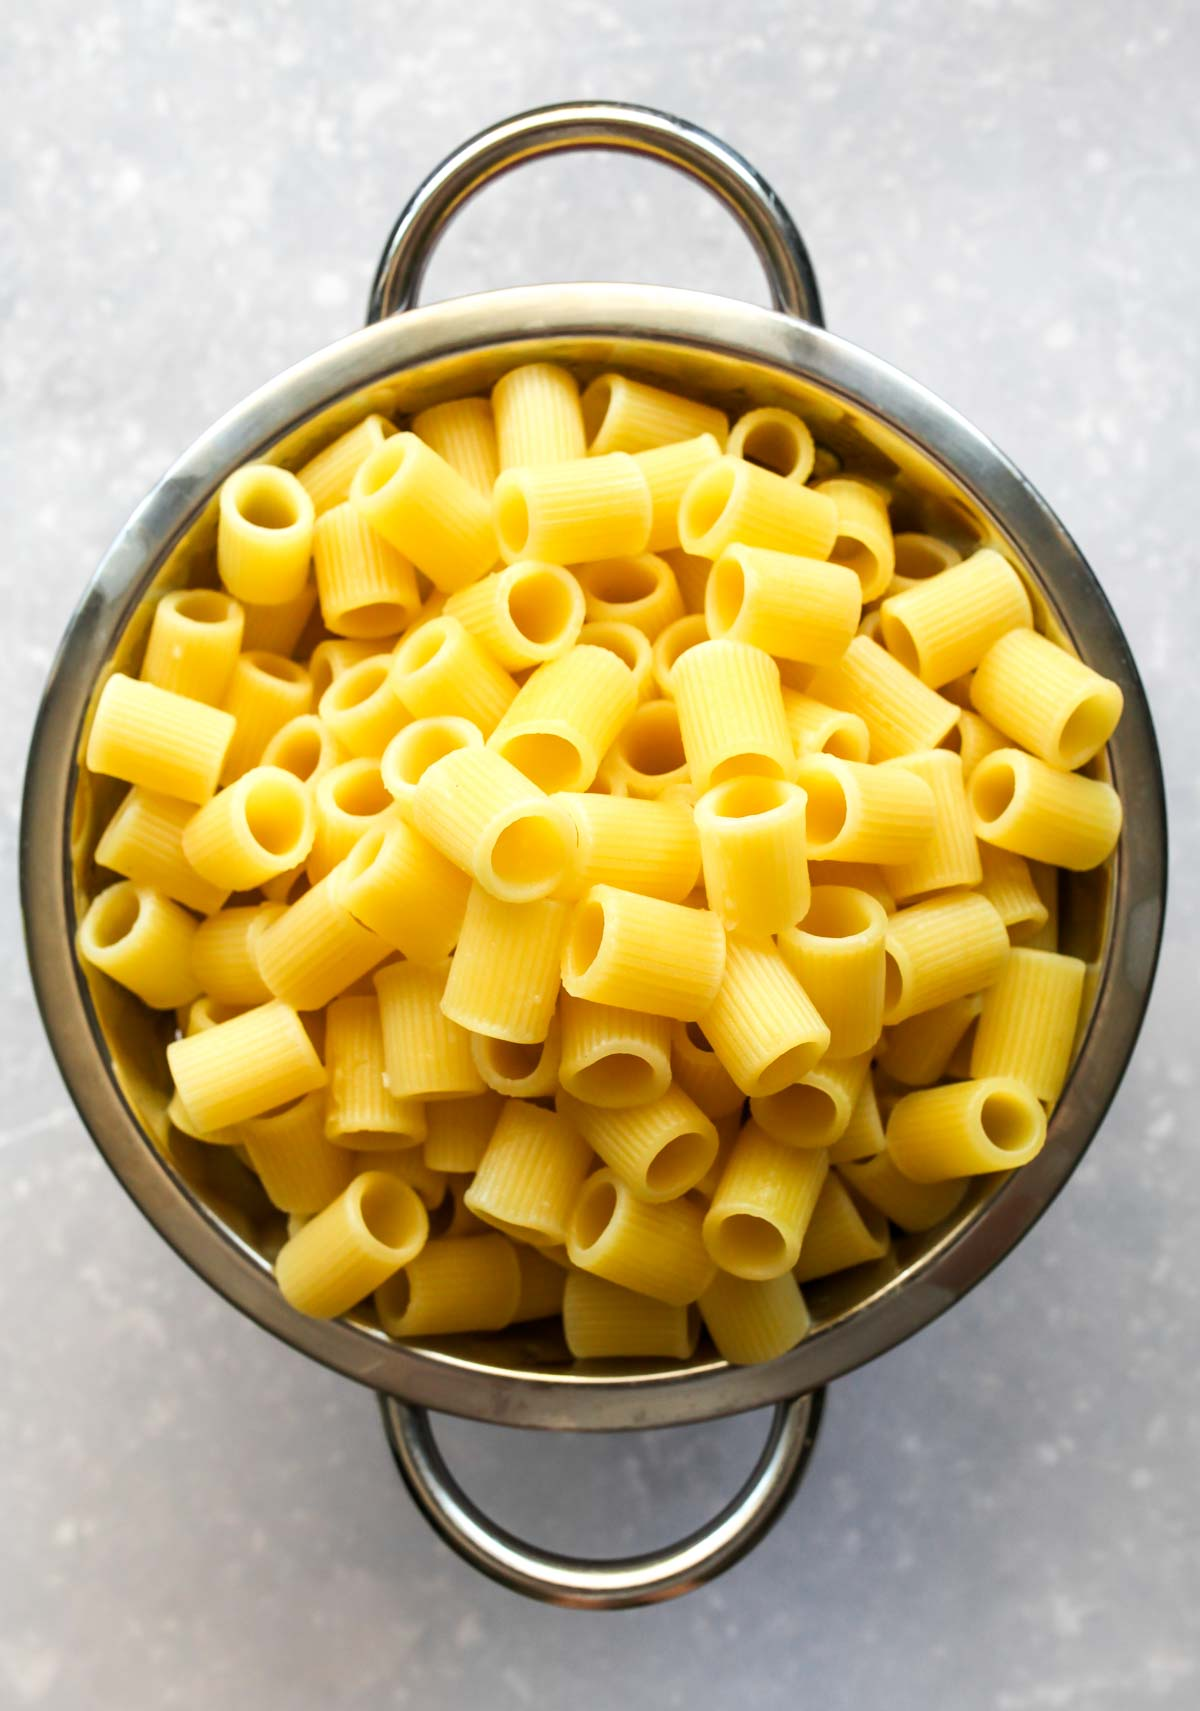 Cooked and drained pasta in a red strainer